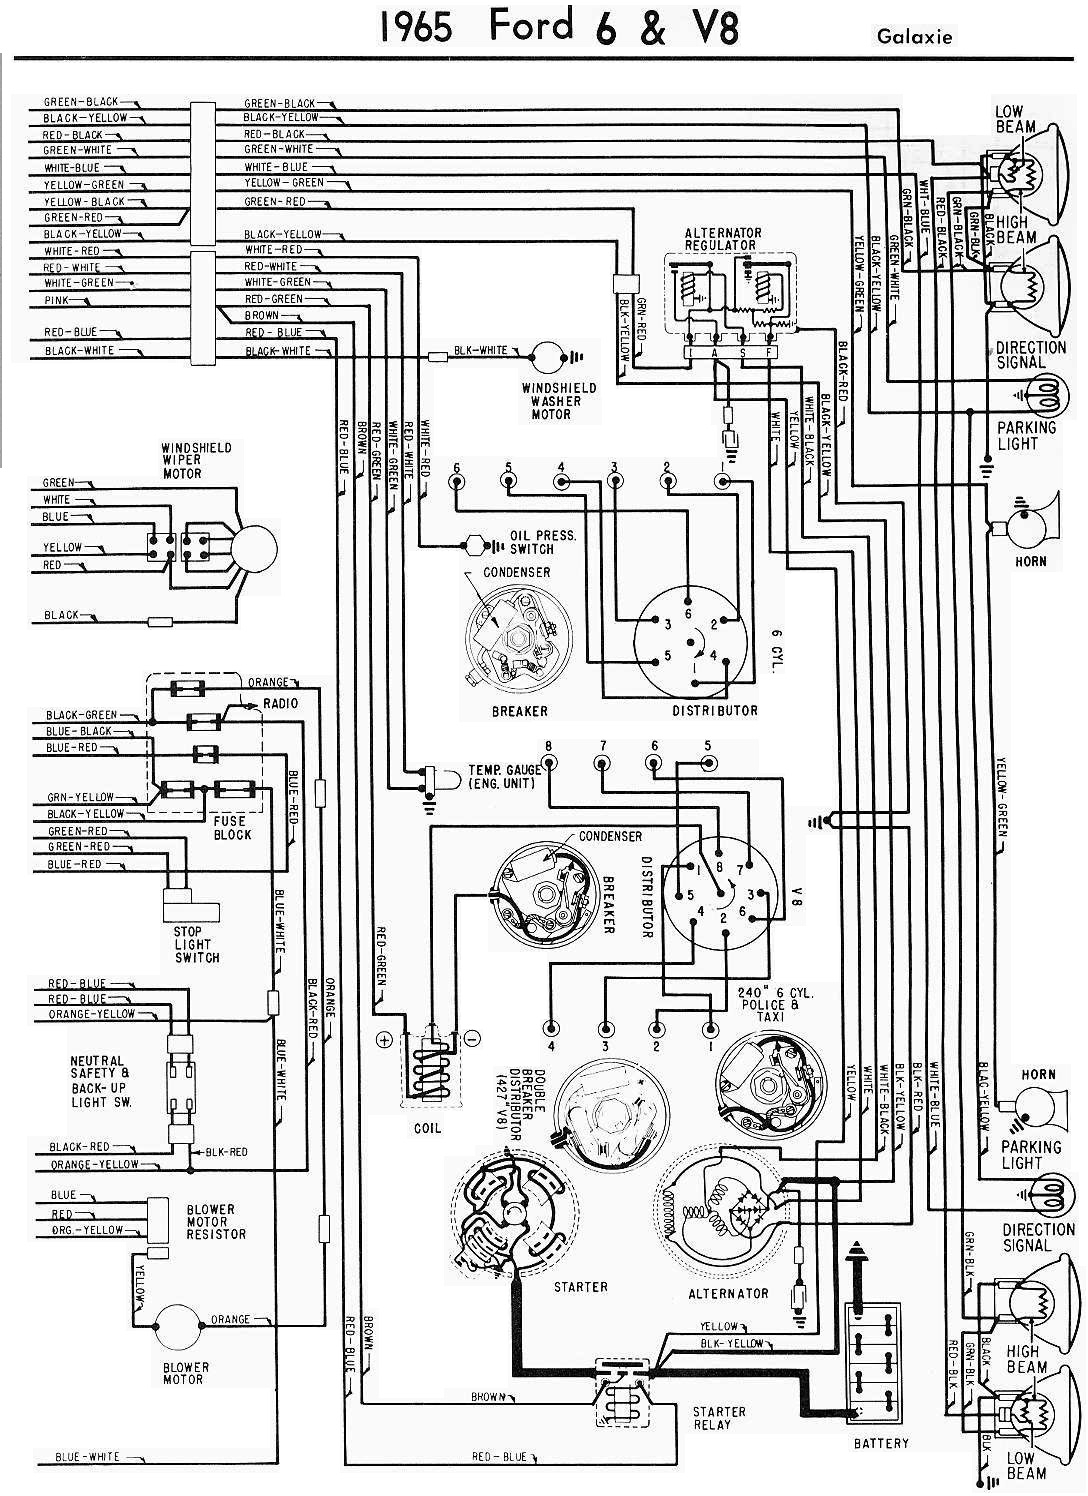 1965+Ford+Galaxie+Complete+Electrical+Wiring+Diagram+Part+2 1965 ford galaxie complete electrical wiring diagram part 2 all 1964 ford galaxie 500 wiring diagram at edmiracle.co